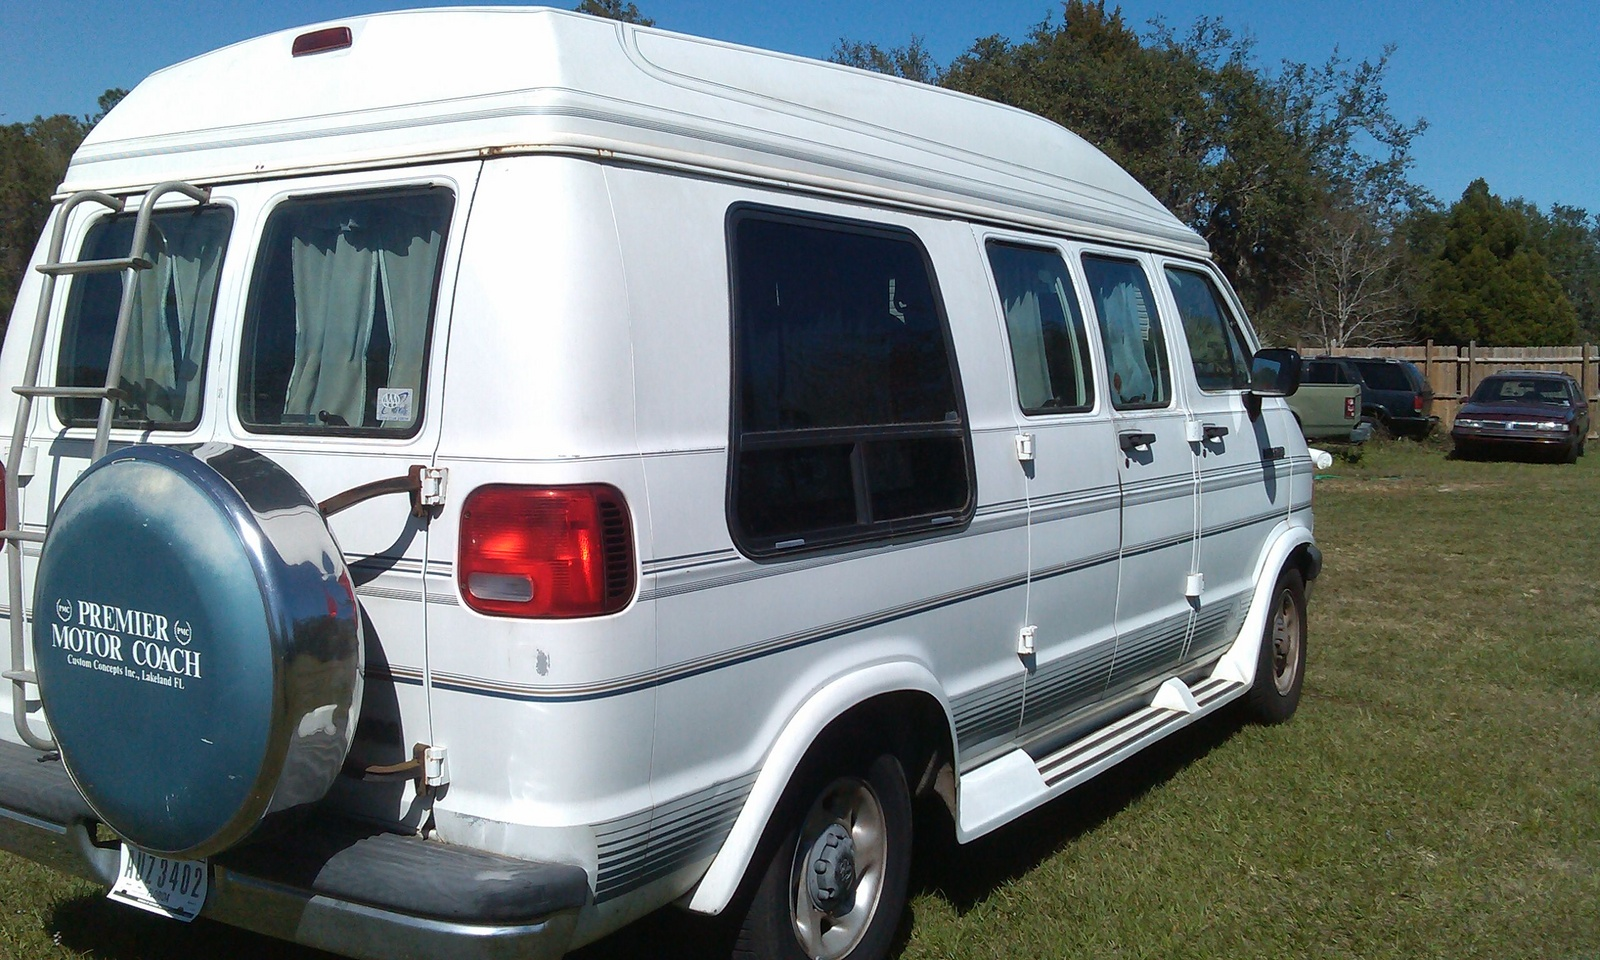 Picture of 1994 Dodge Ram Wagon 3 Dr B250 LE Passenger Van Extended